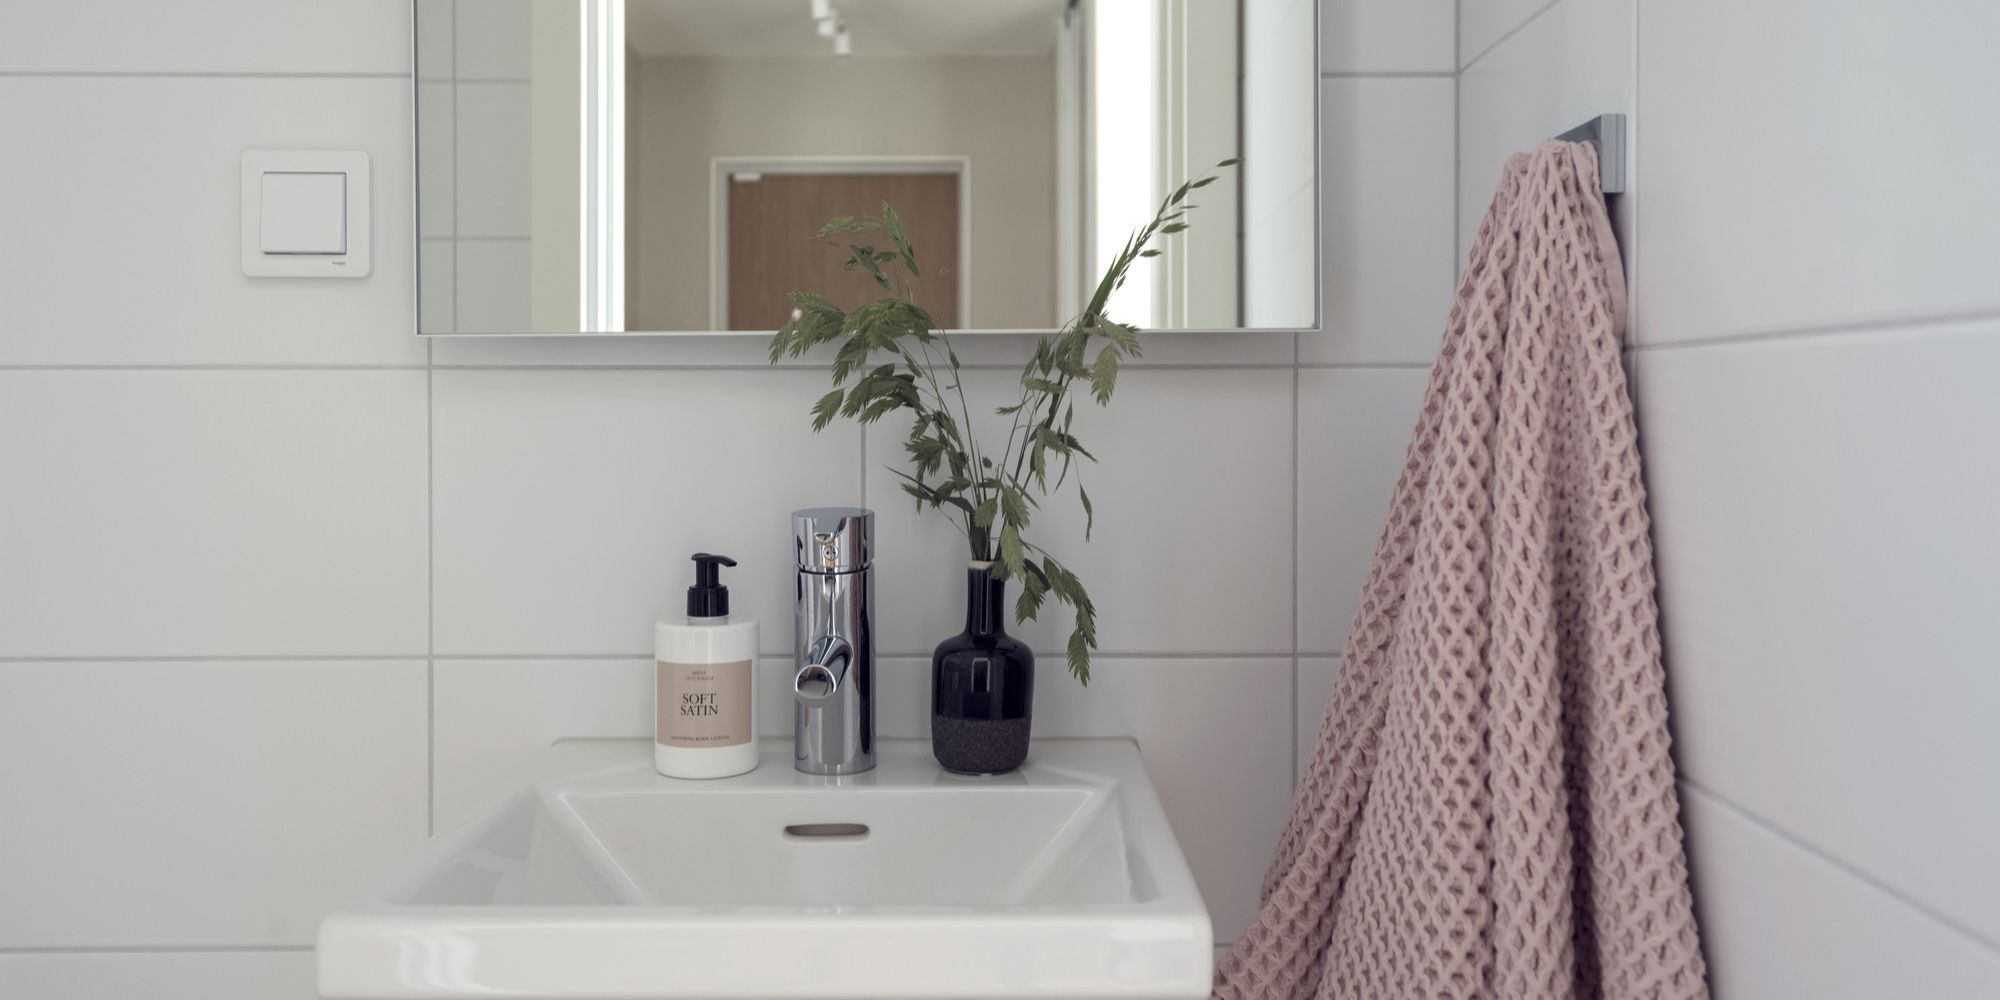 siteassets/img/article/inspiration/------5/bathroom-style-9.jpg